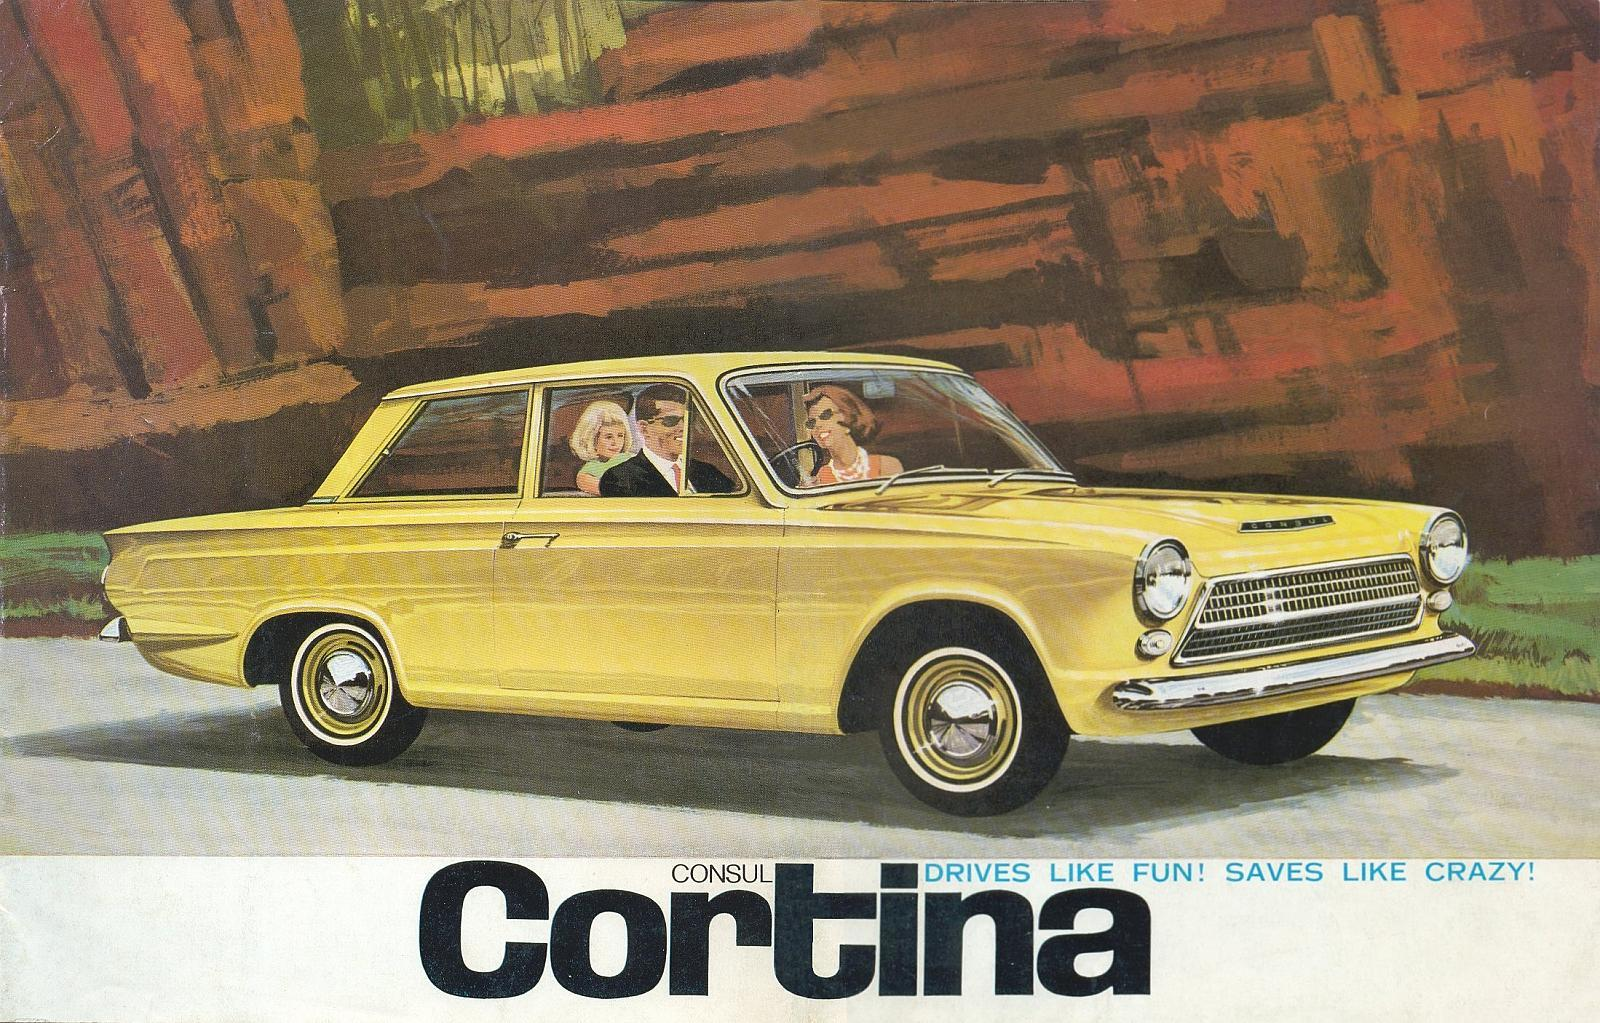 An Australian For Cortina ad from 1963.